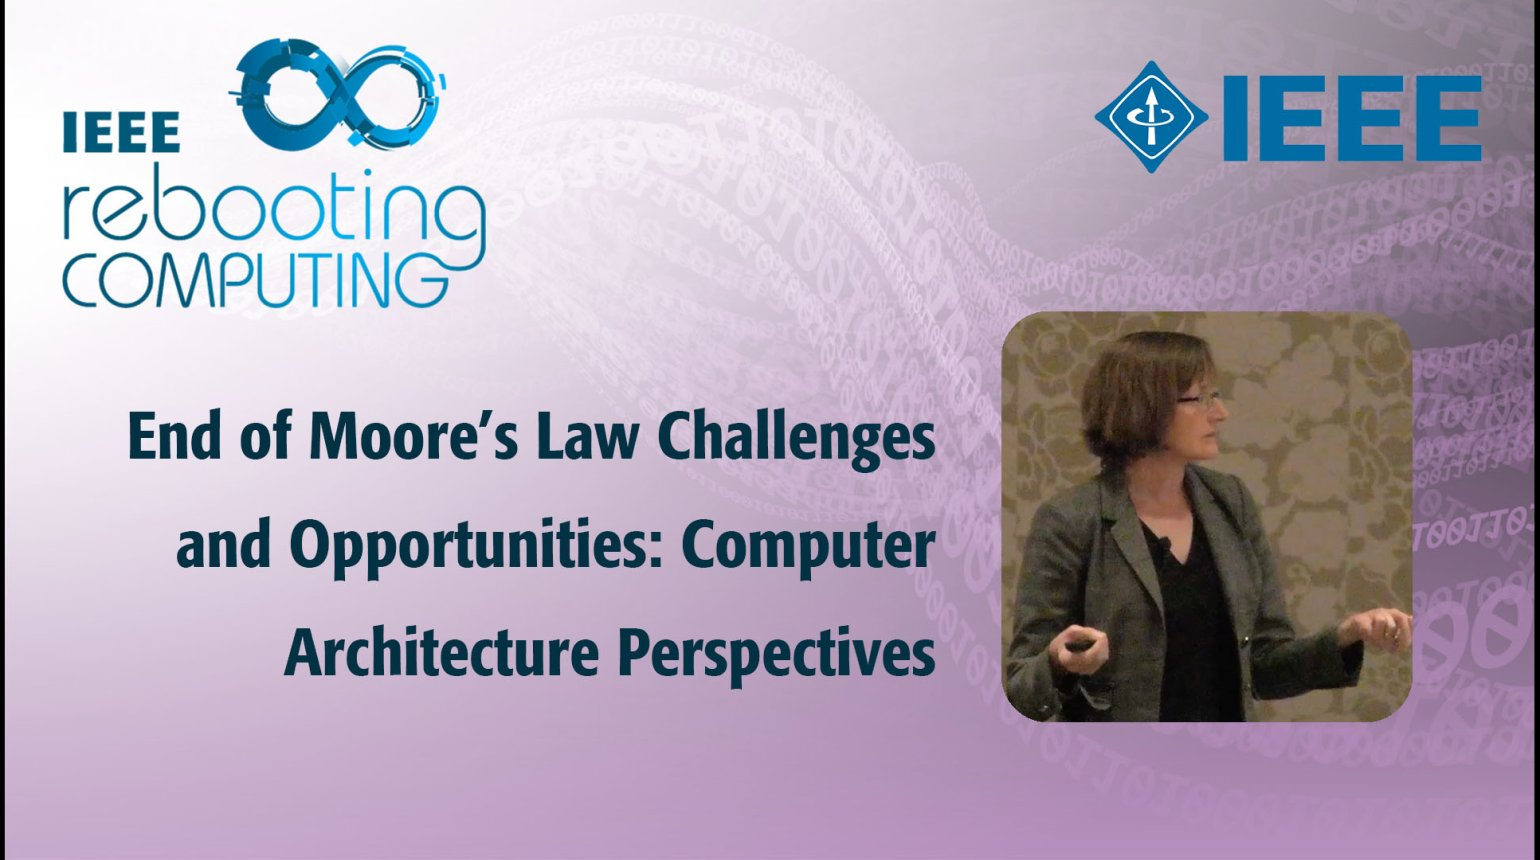 End of Moore's Law Challenges and Opportunities: Computer Architecture Perspectives: IEEE Rebooting Computing 2017, Margaret Martonosi